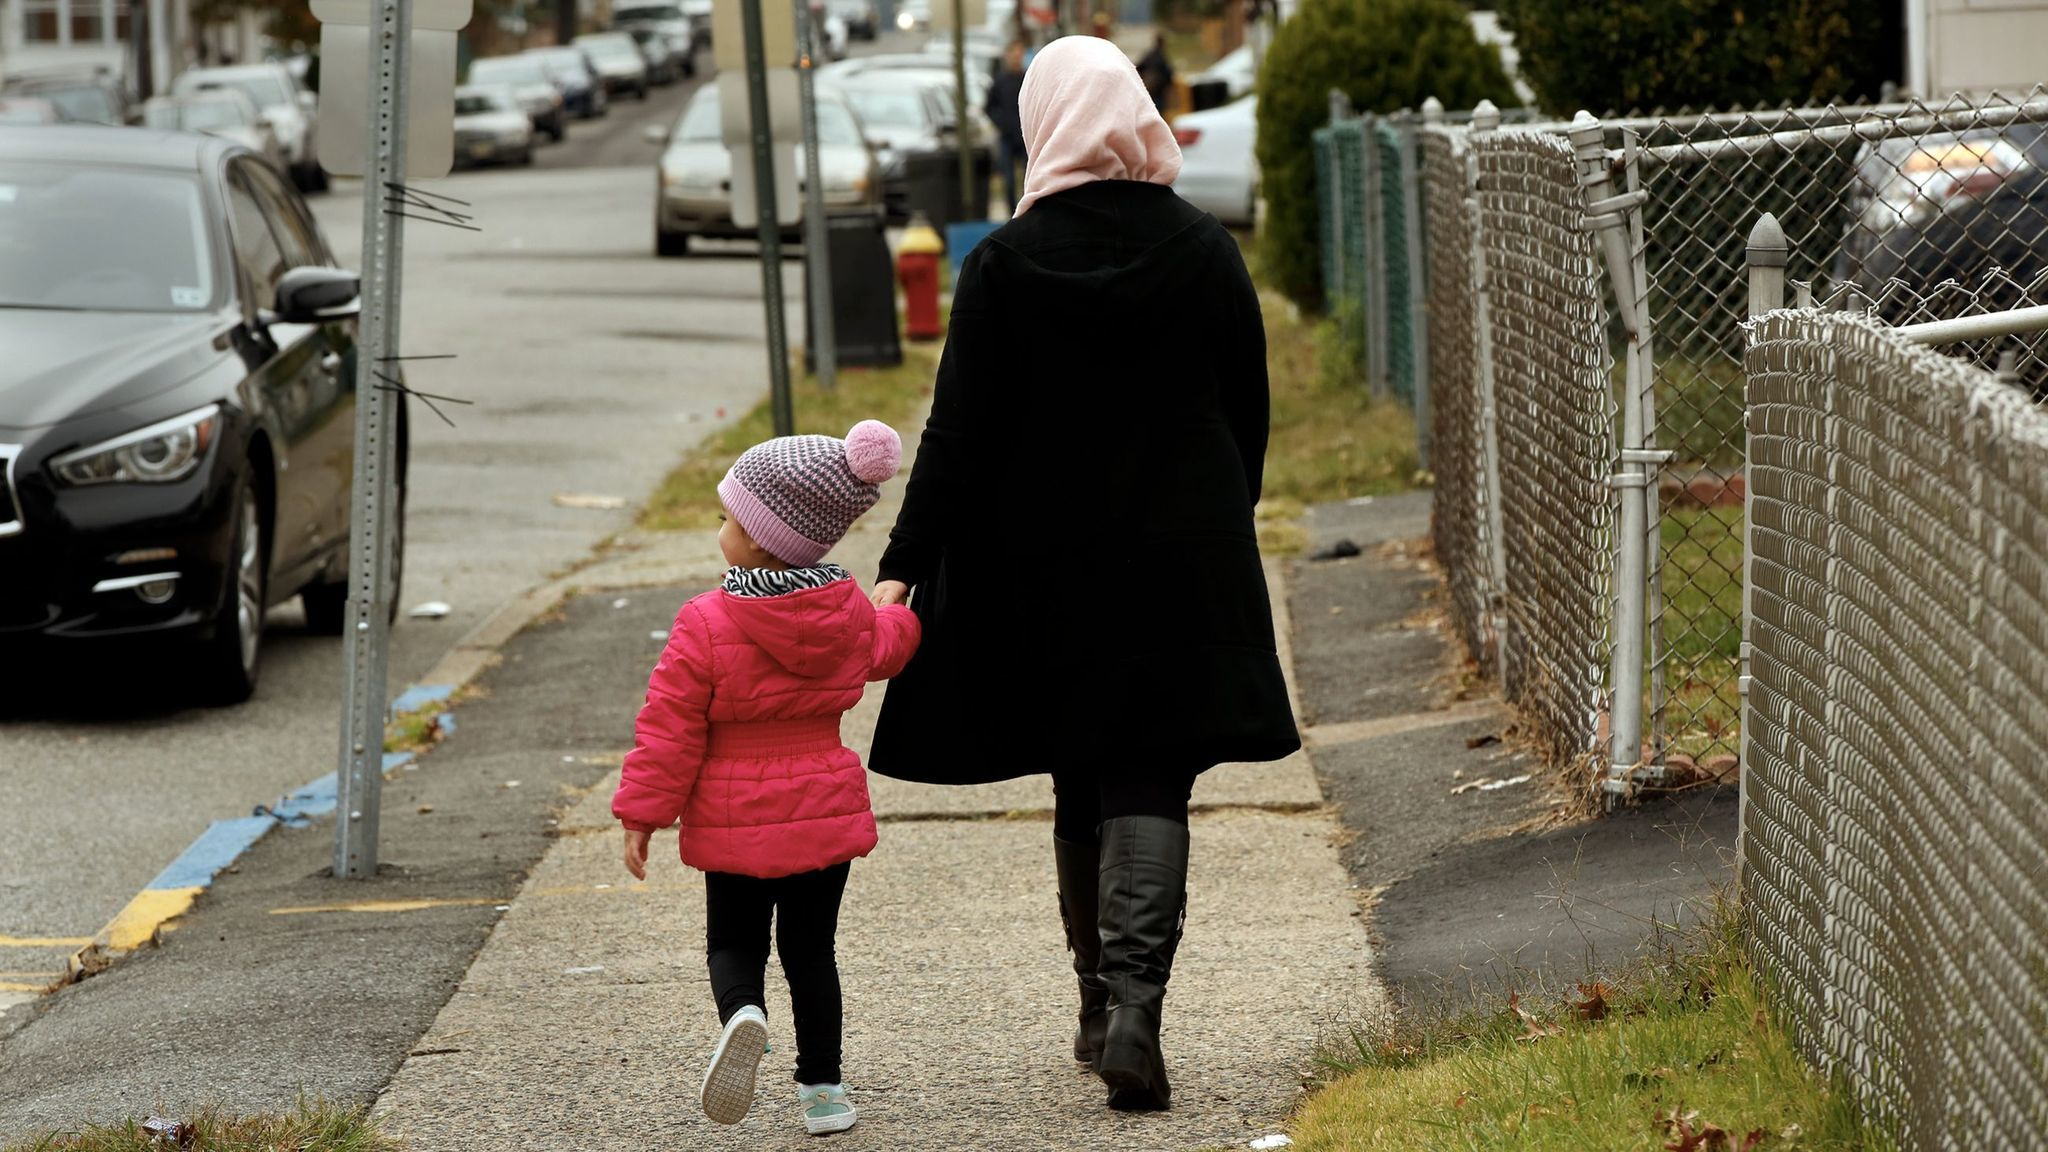 A woman walks with her child on the street where Sayfullo Saipov lived.